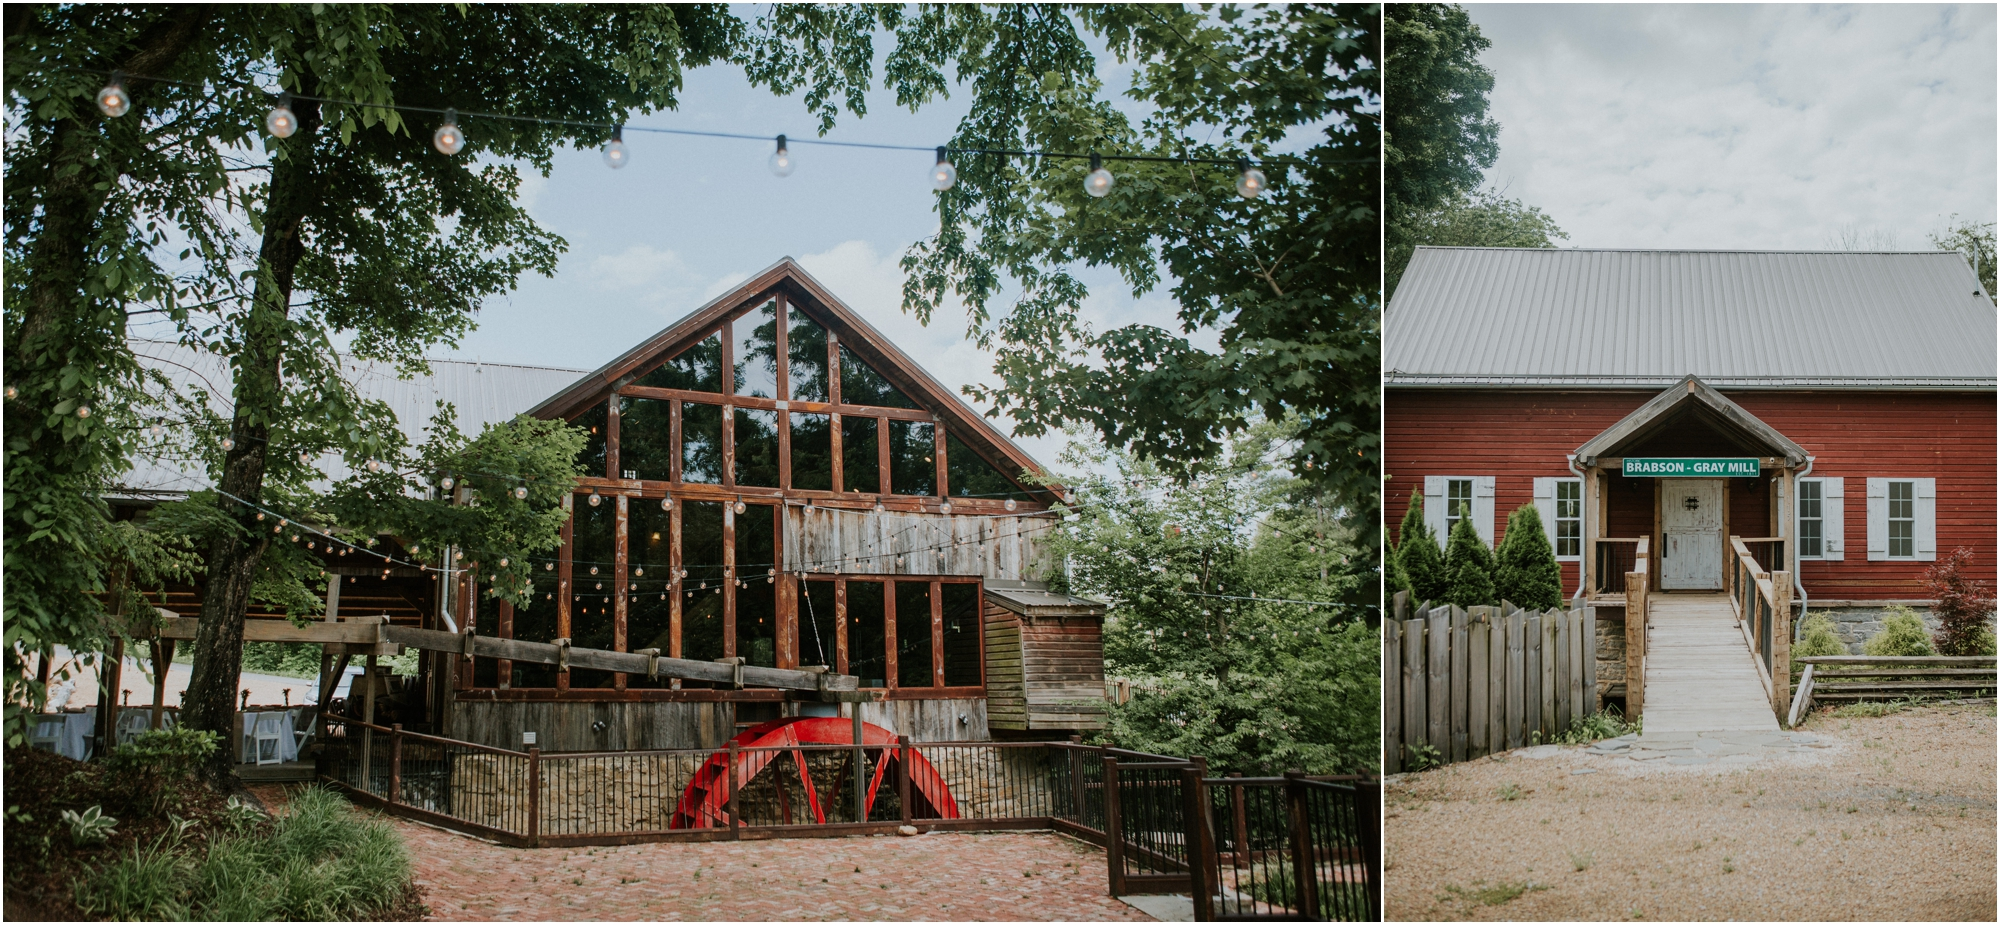 rustic-adventurous-venues-northeast-tennessee-johnsoncity-tricites-millstone-waterstone-camp-at-buffalo-mountain-storybrook_0001.jpg